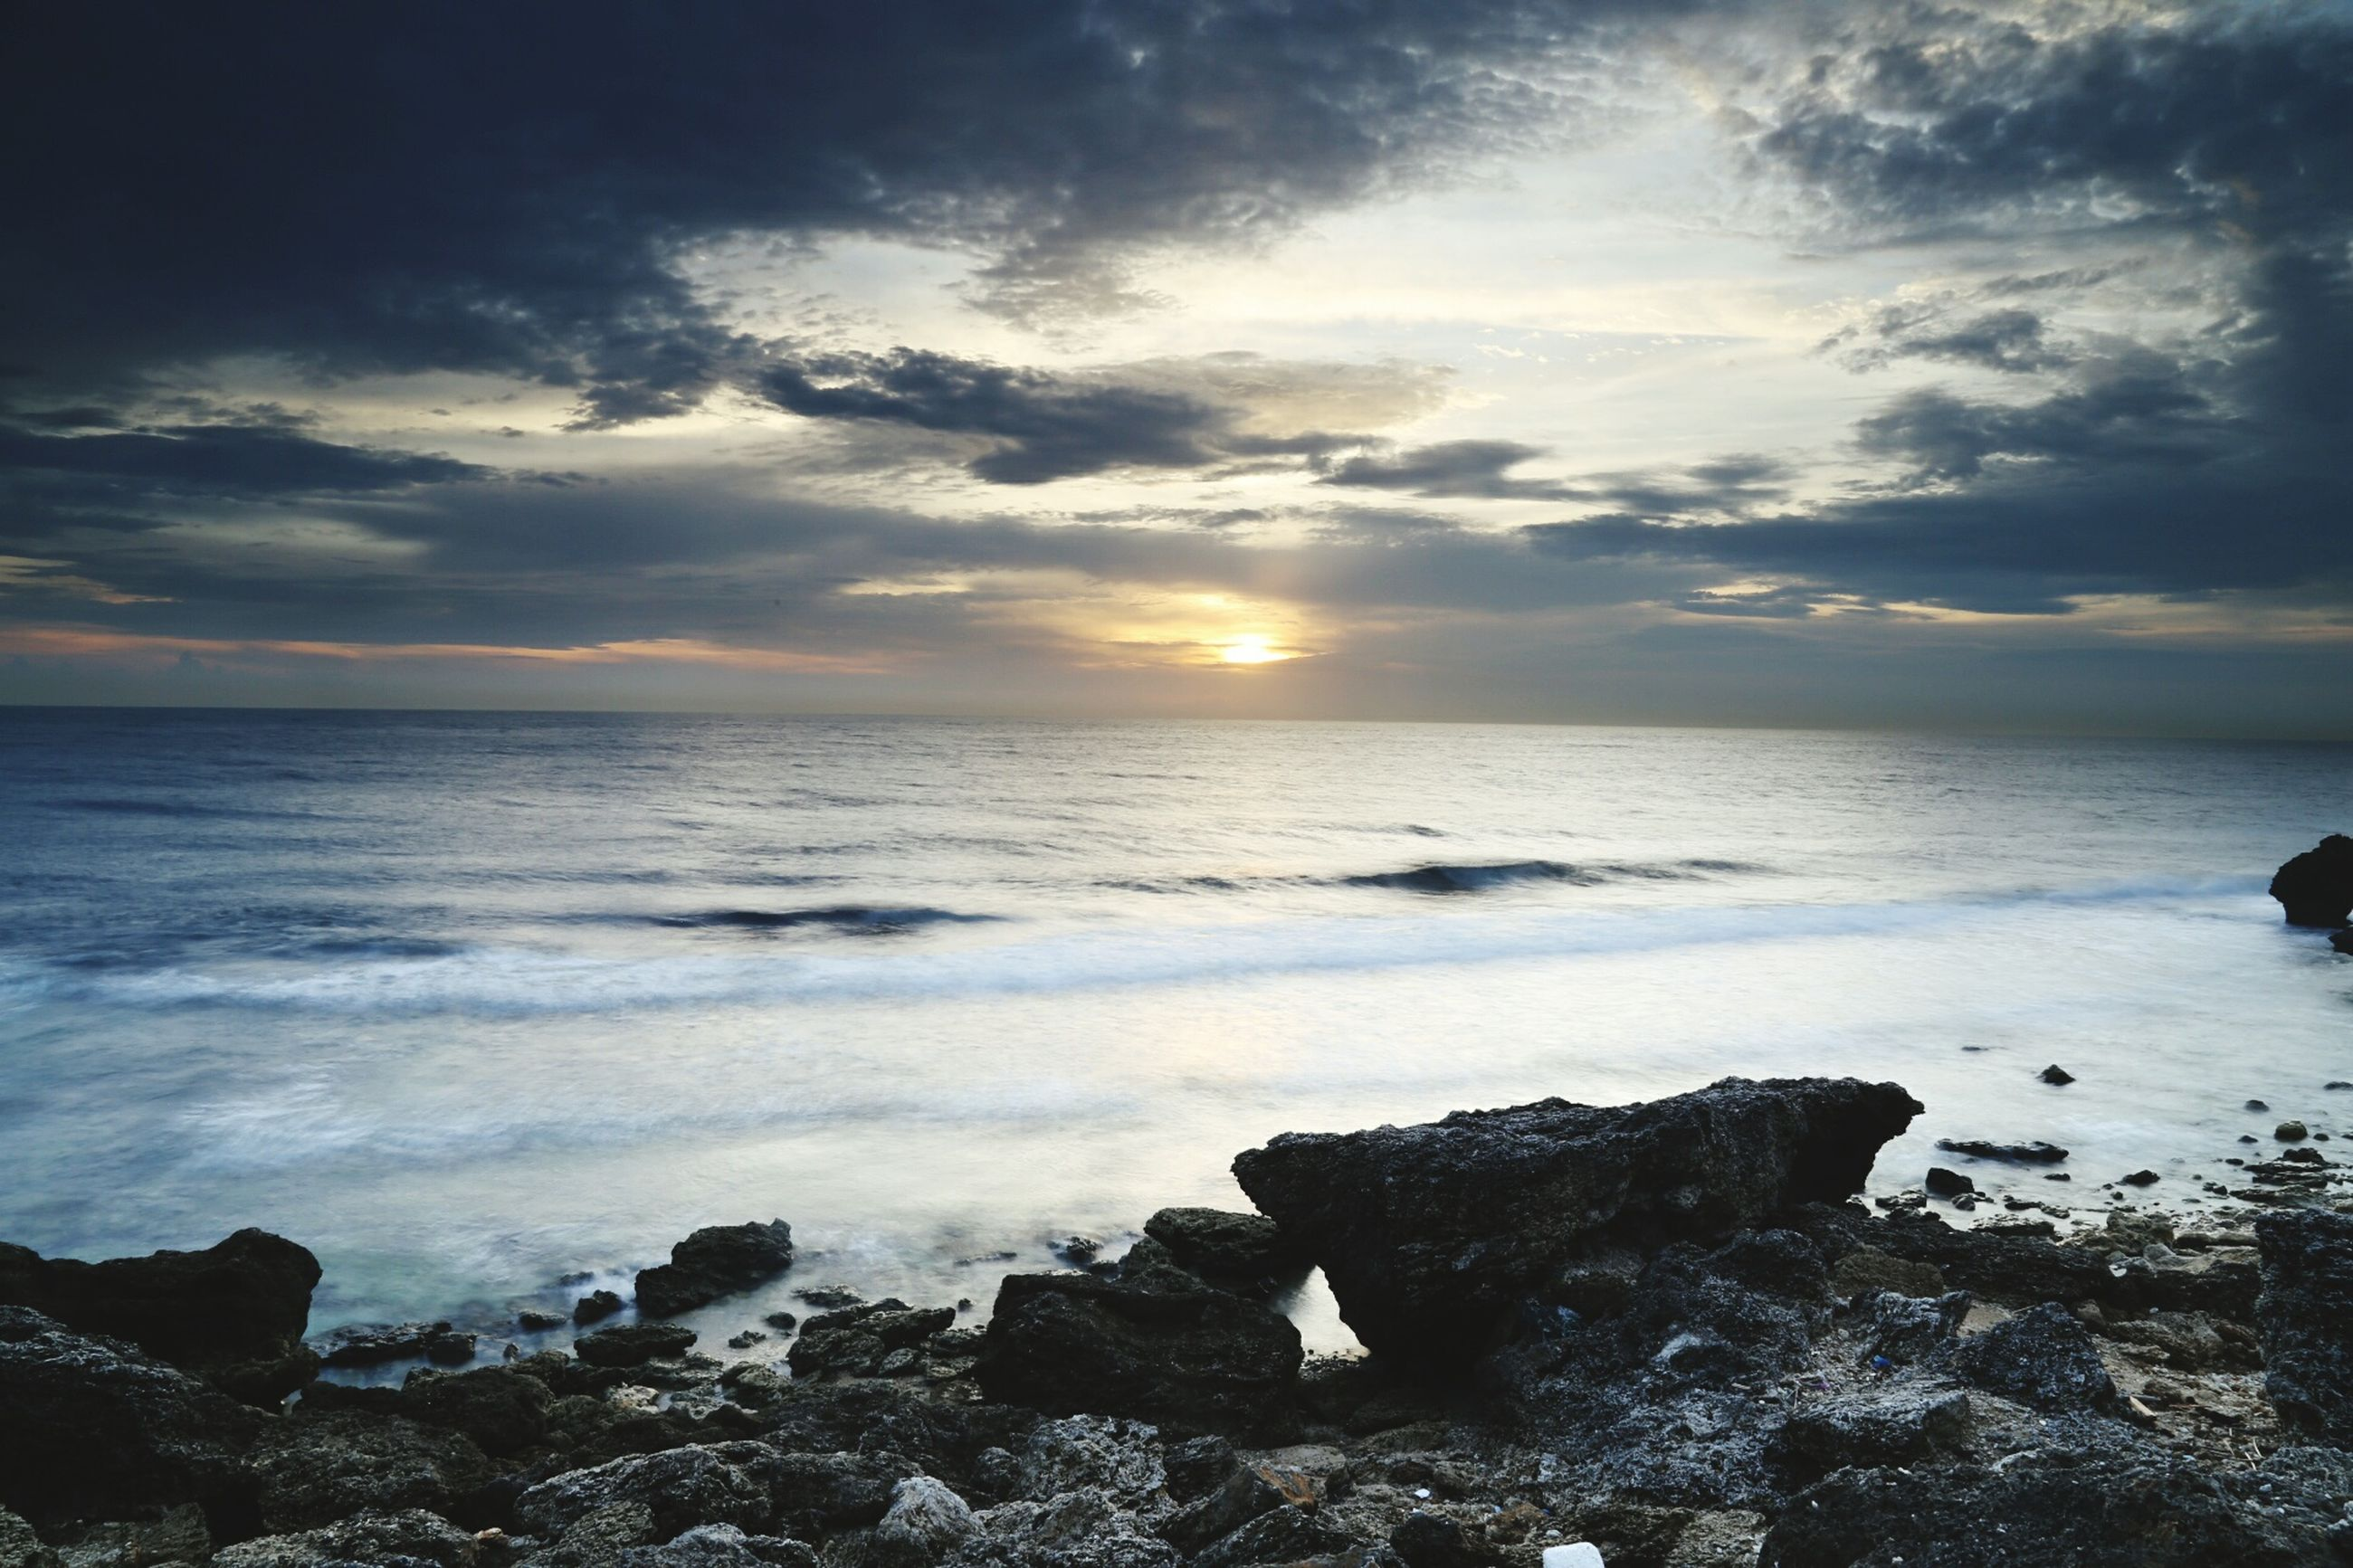 sea, horizon over water, water, sunset, scenics, sky, tranquil scene, beach, beauty in nature, rock - object, tranquility, shore, cloud - sky, nature, idyllic, sun, cloud, rock formation, rock, wave